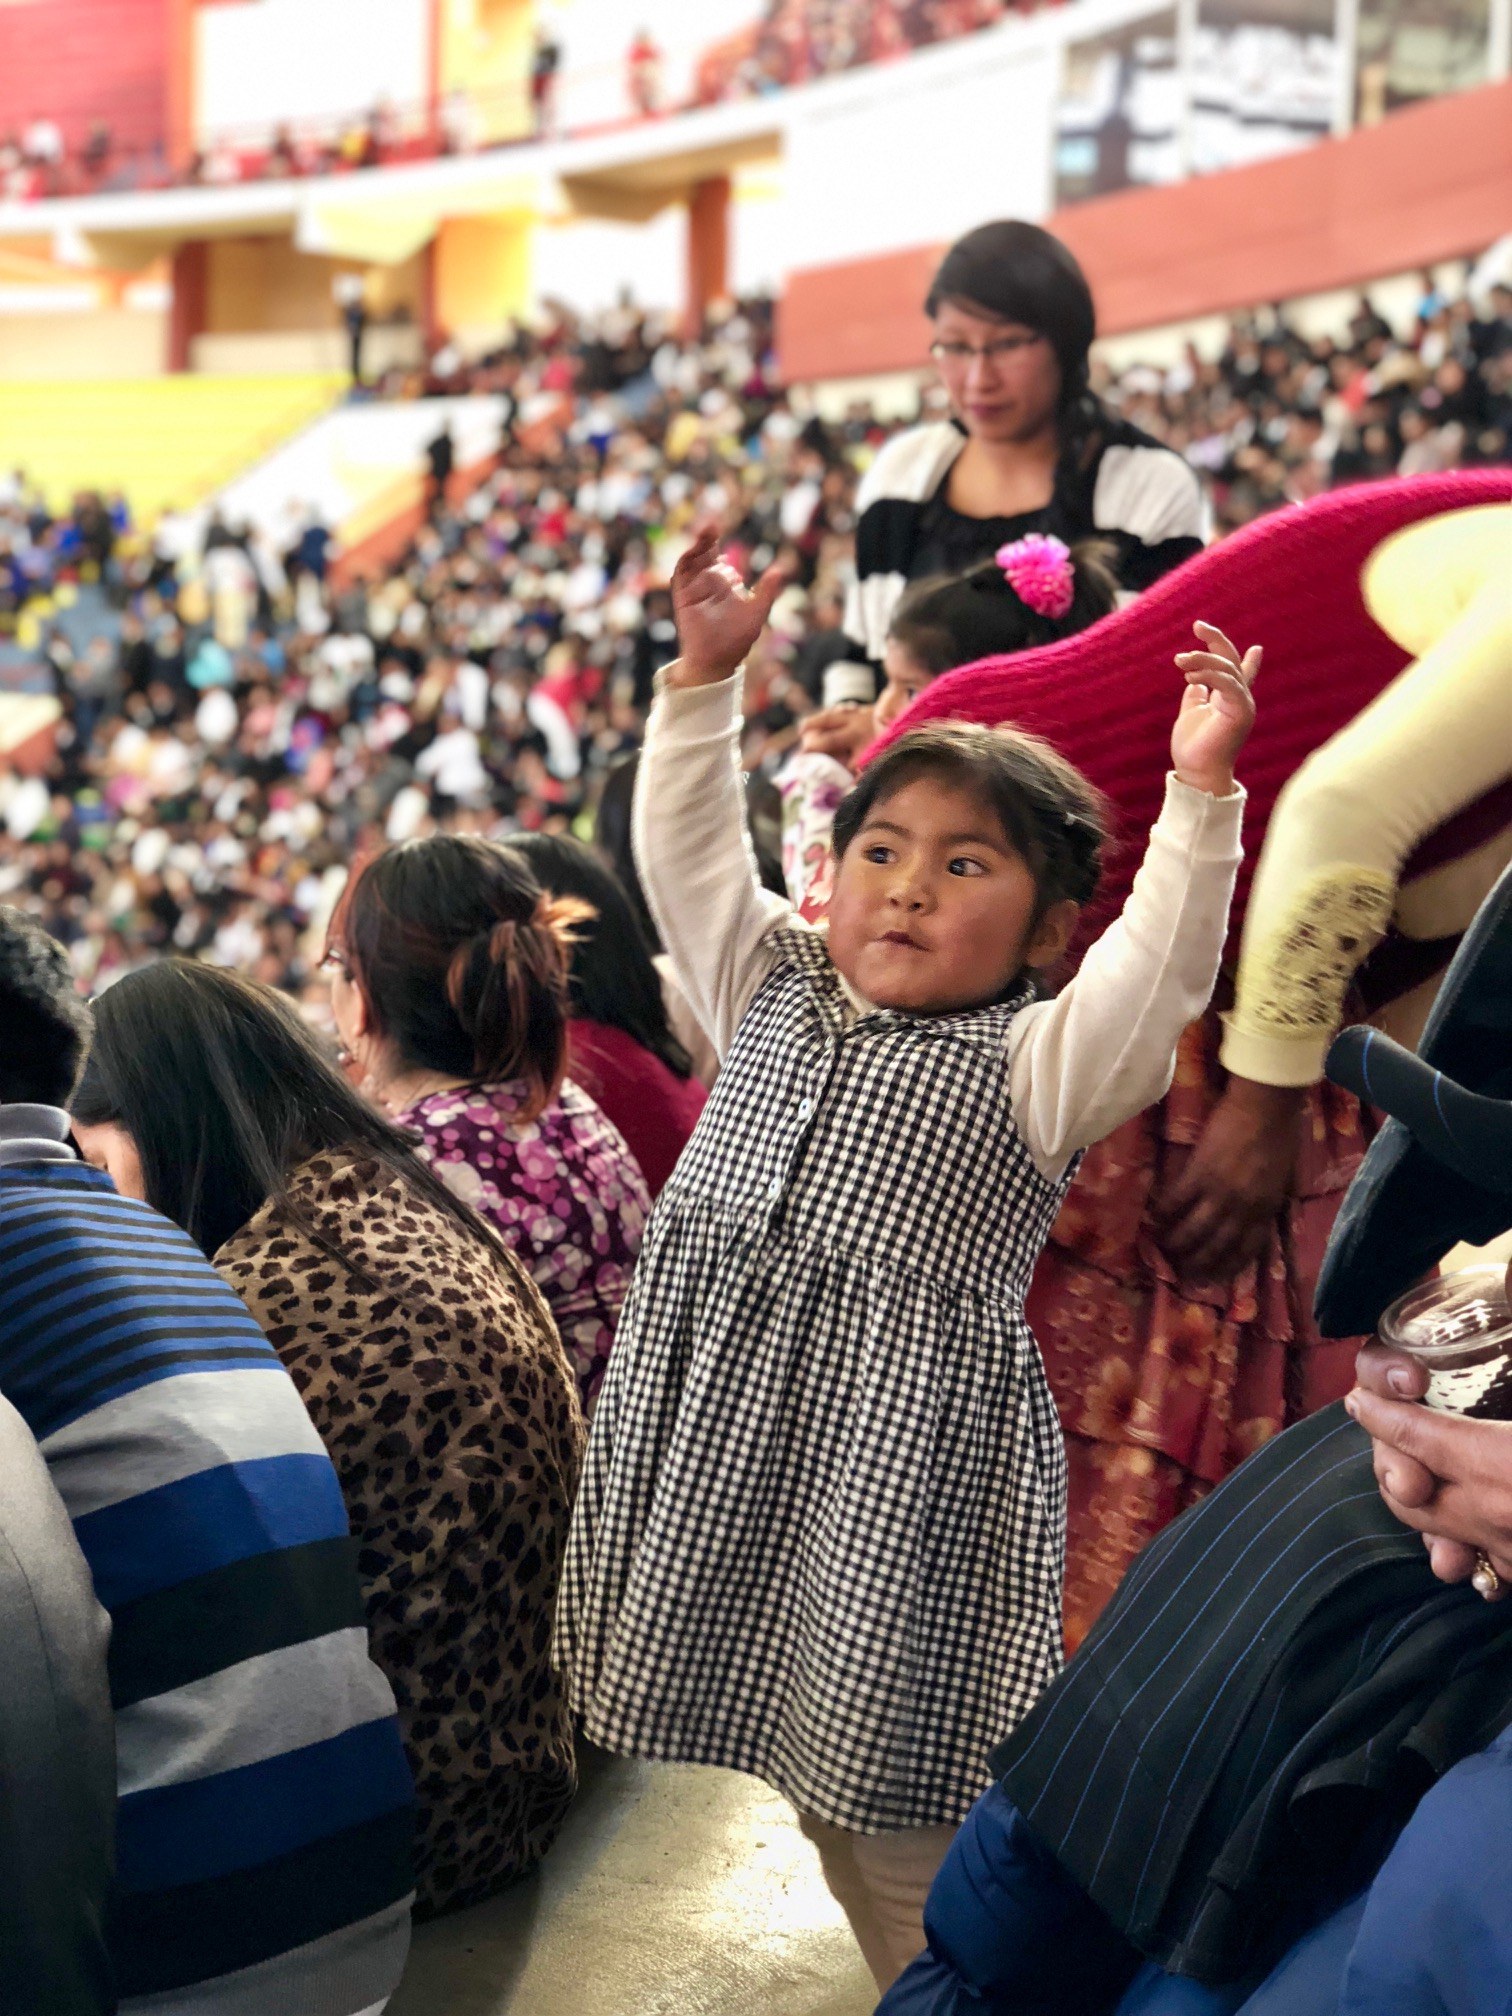 Crowds gathered in the Polideportivo Heroes de Octubre in El Alto on Sunday, Oct. 21 to hear President Nelson speak.